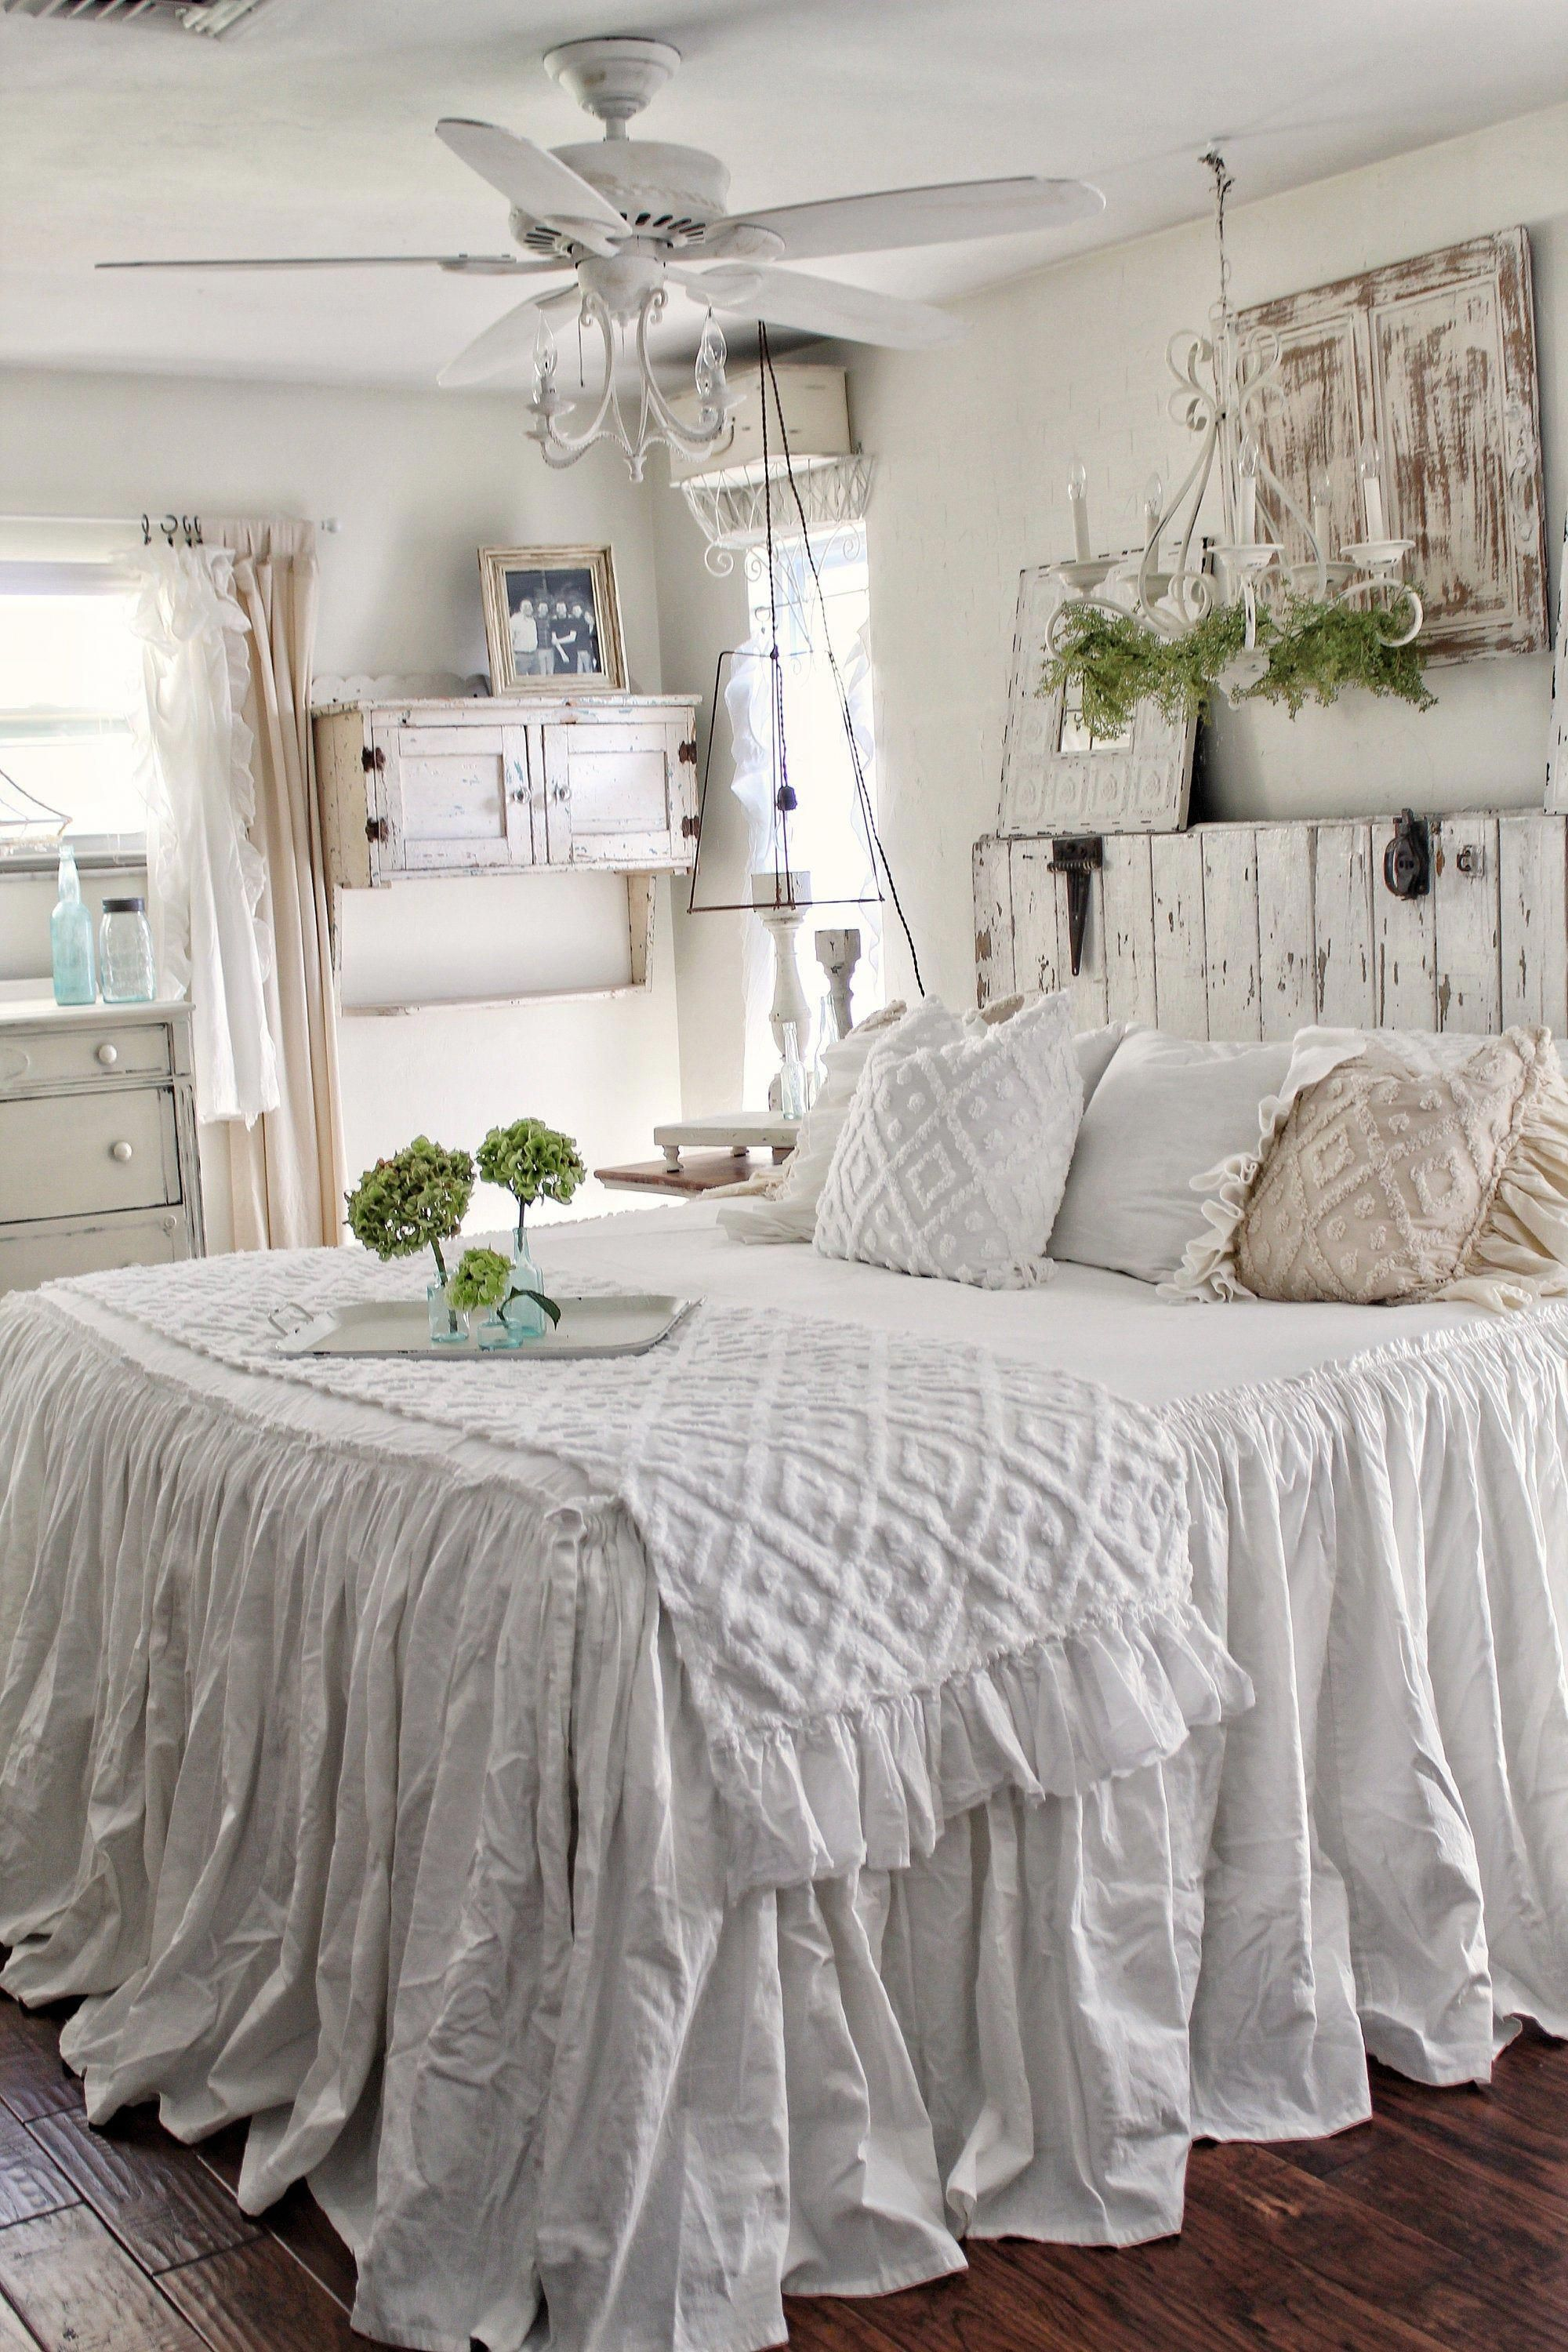 Decorating Your Primary Bedroom With Shabby Chic Furniture